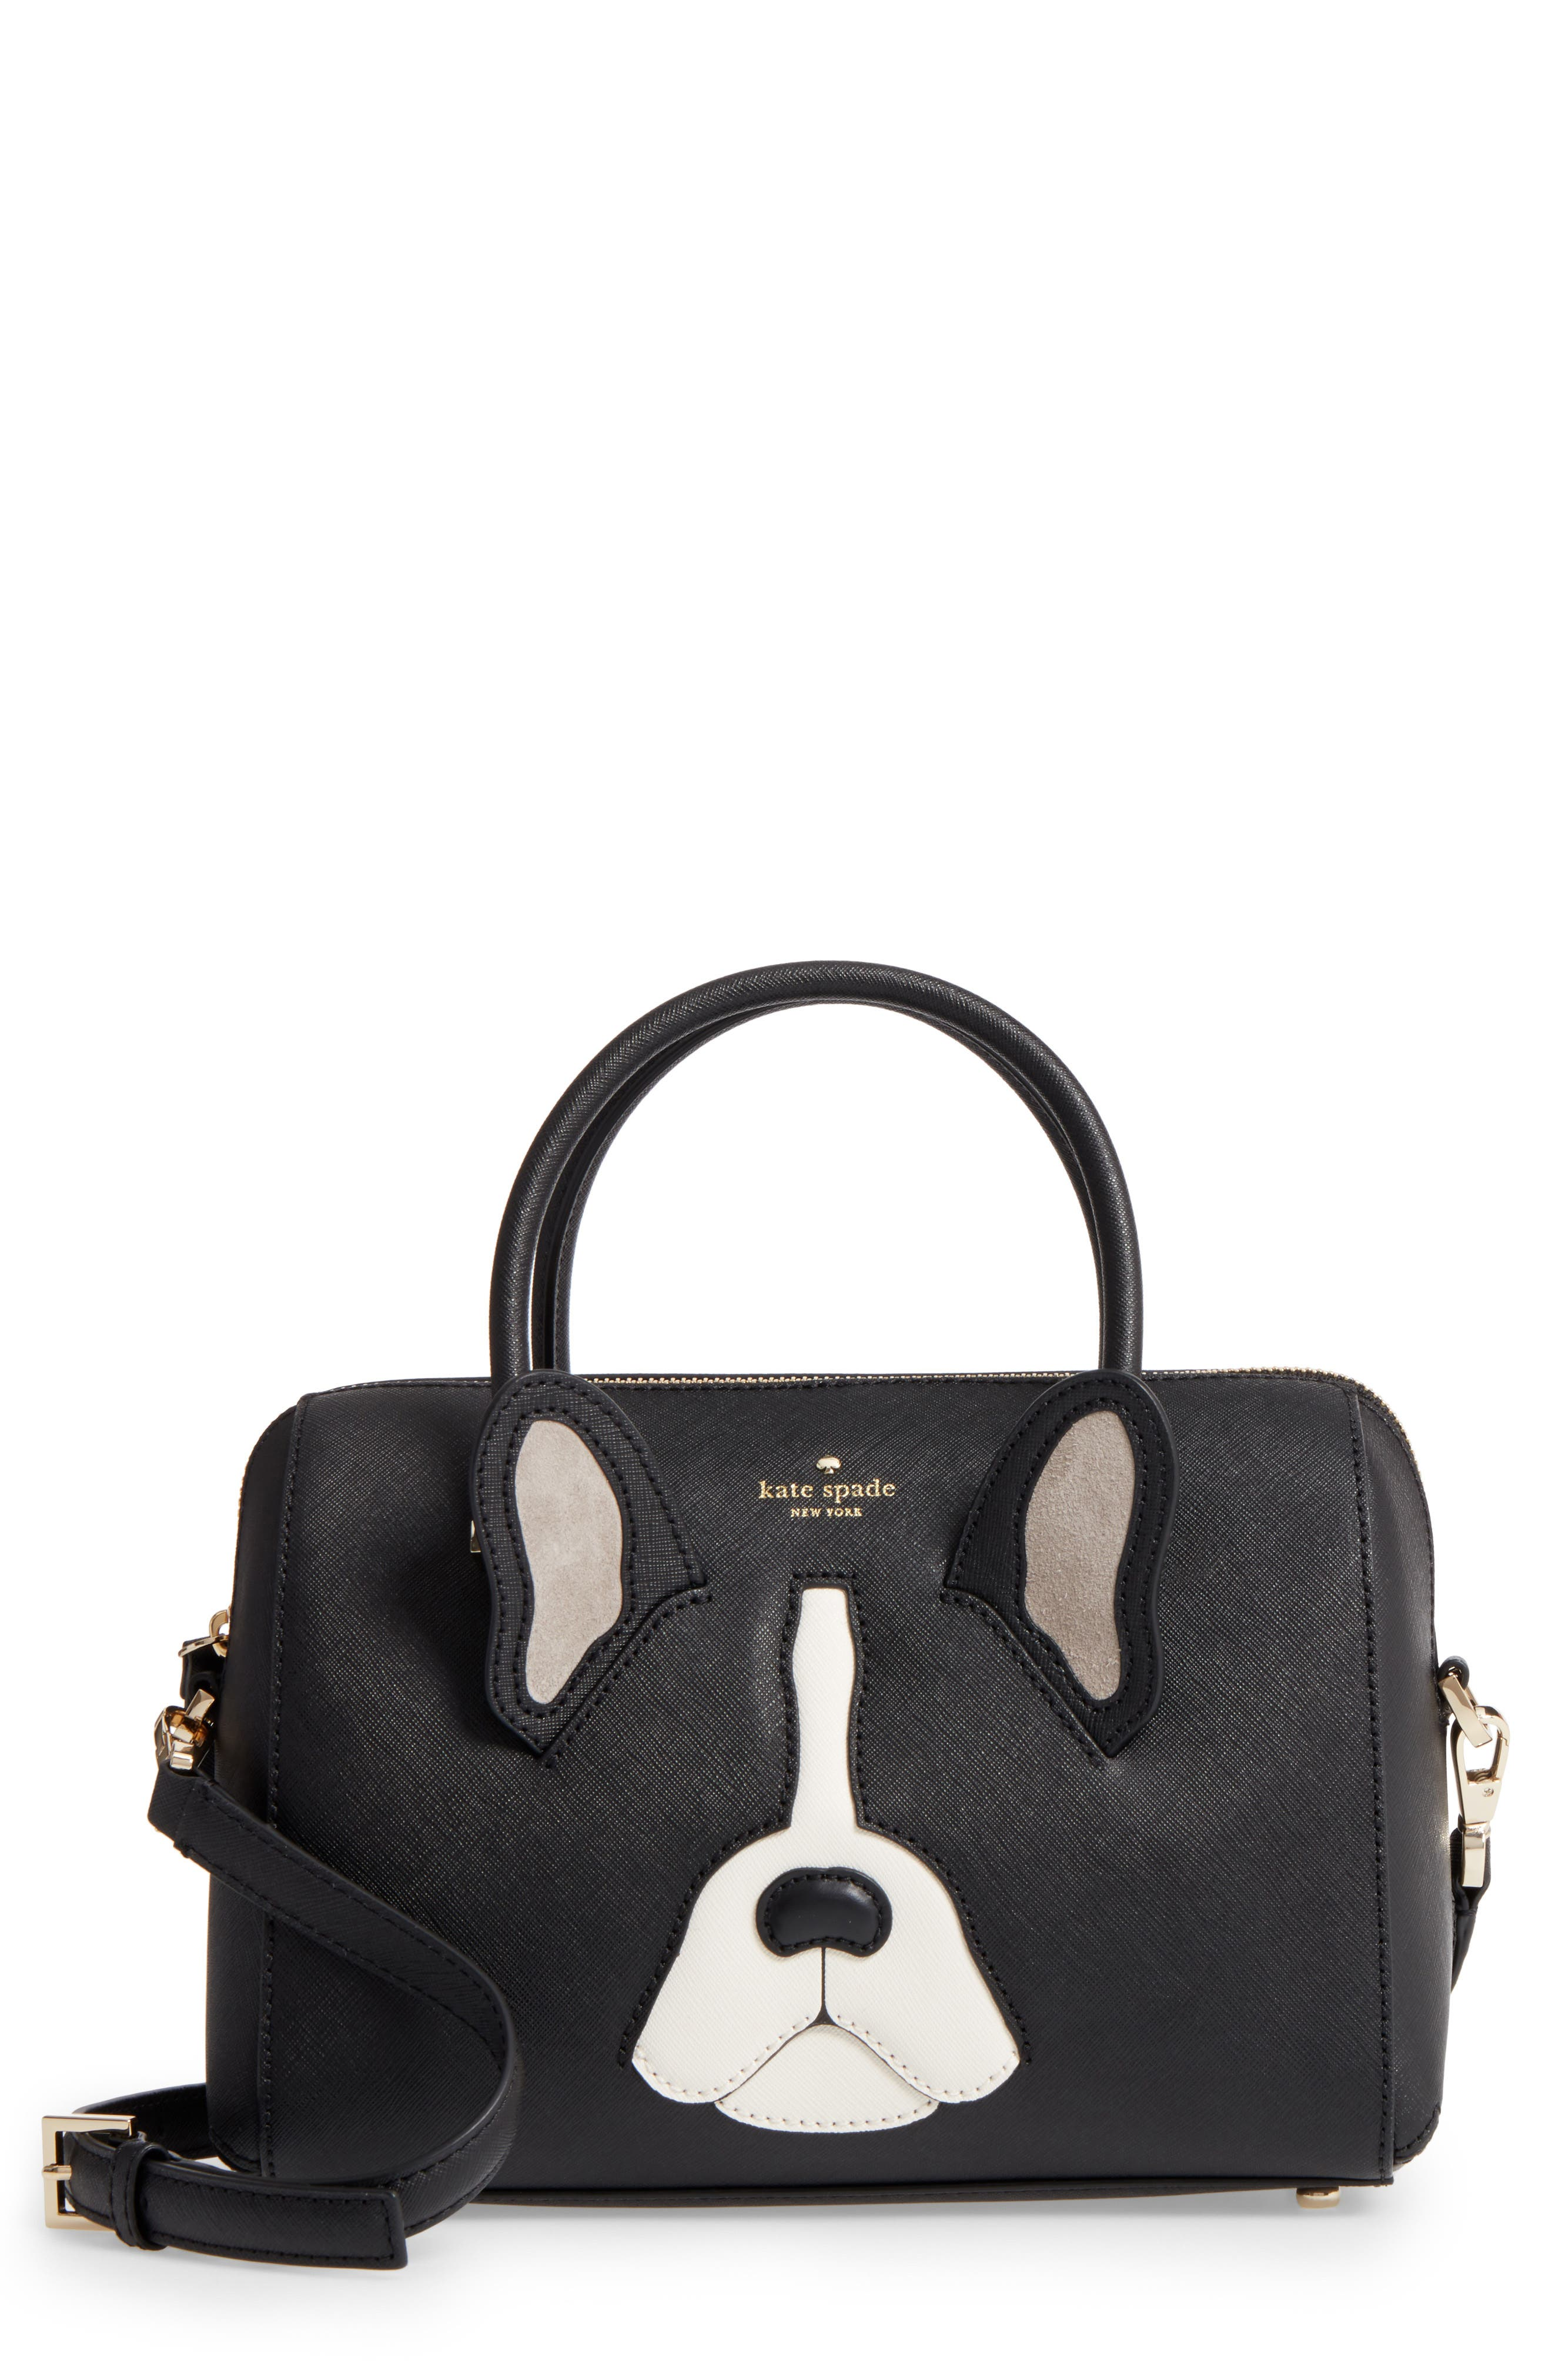 KATE SPADE NEW YORK ma chérie antoine - large lane satchel